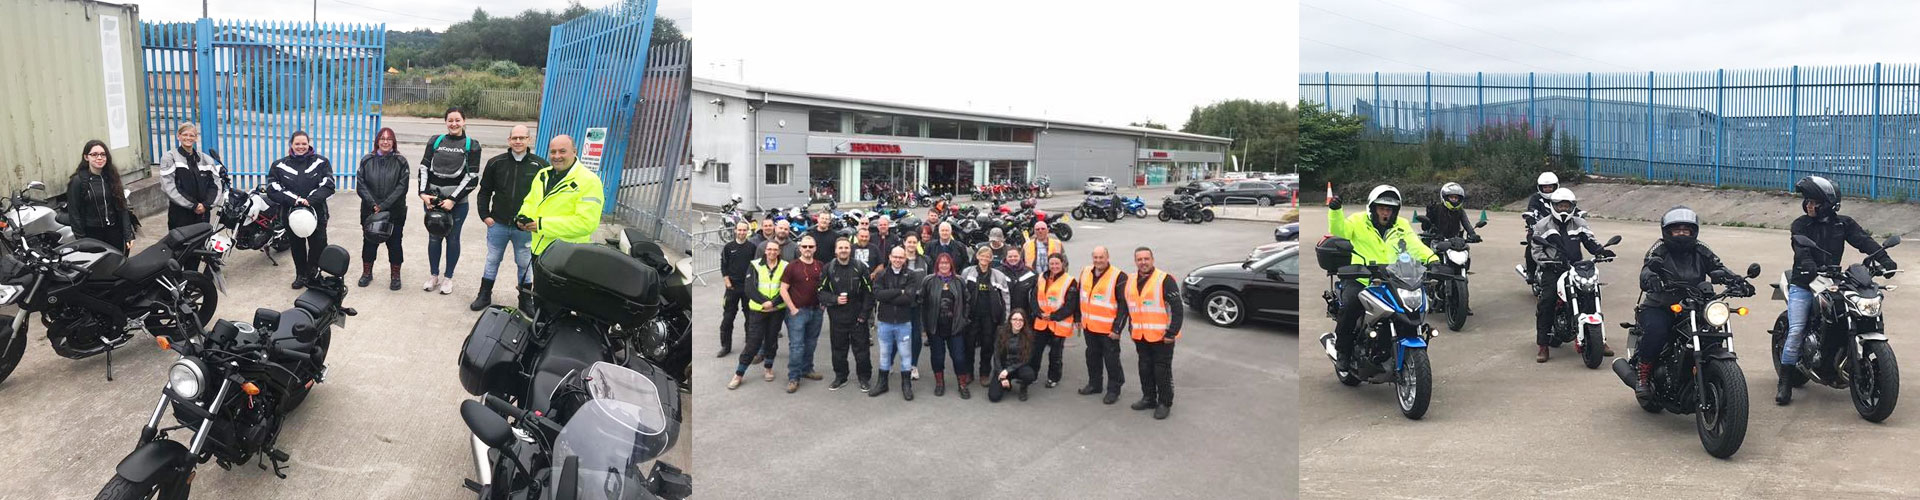 Charity Ride Out Raises Funds for Elizabeth Dee Banner